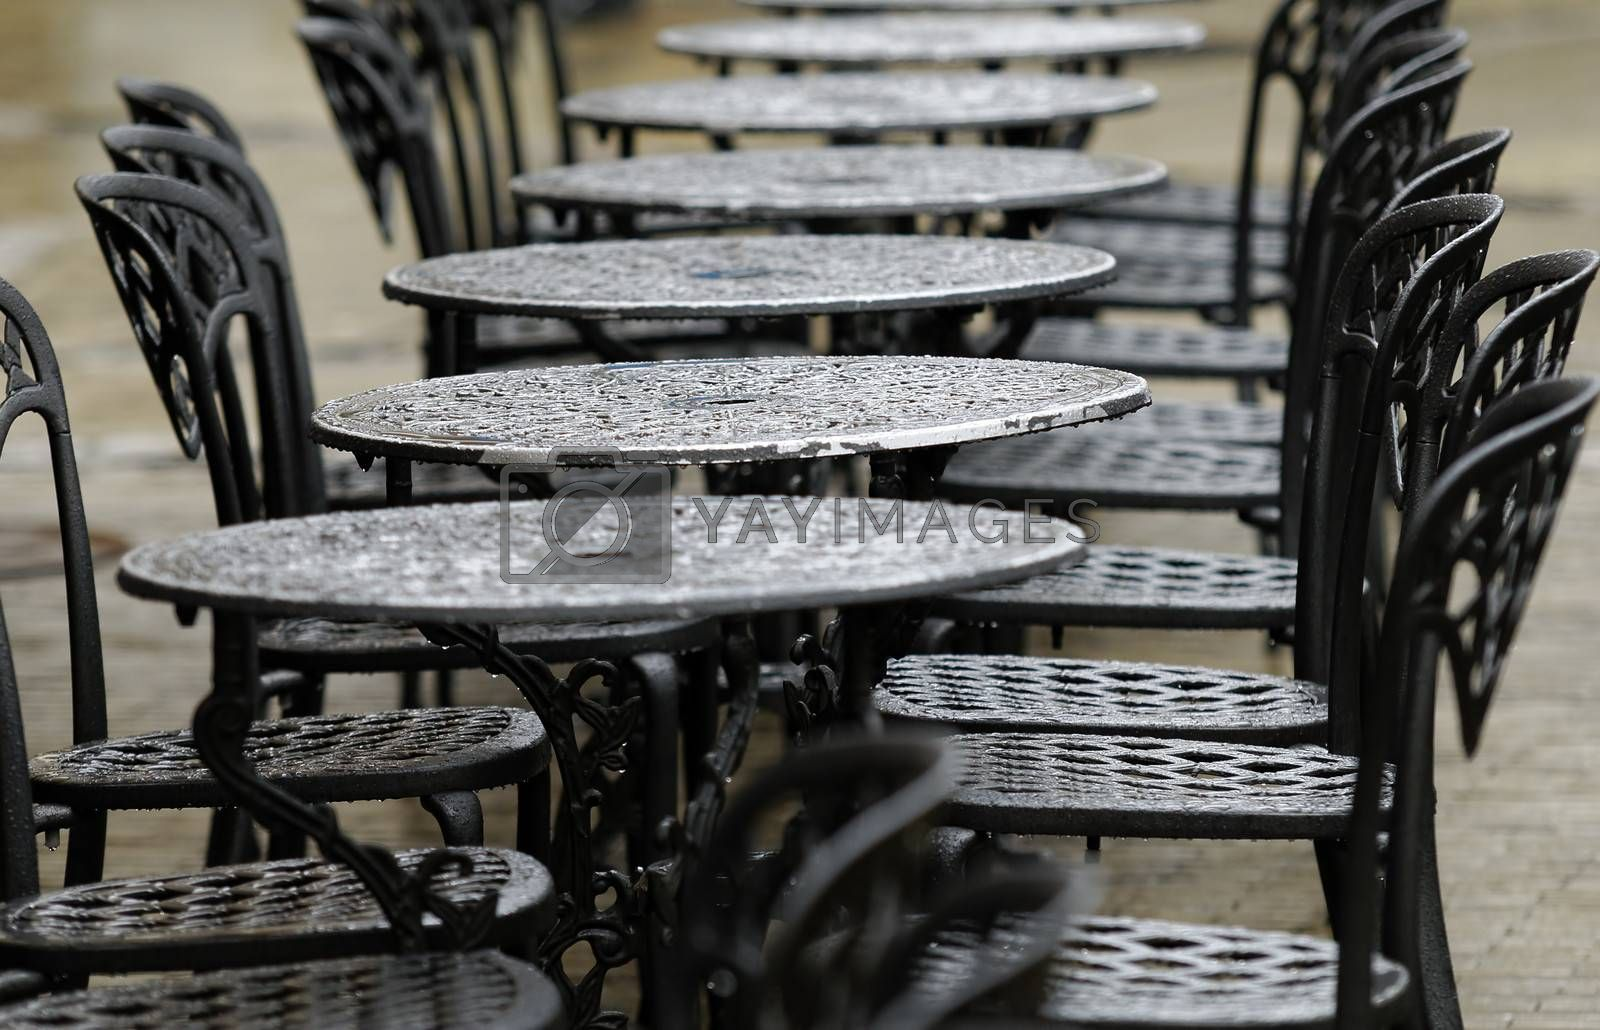 bistro tables on a rainy day